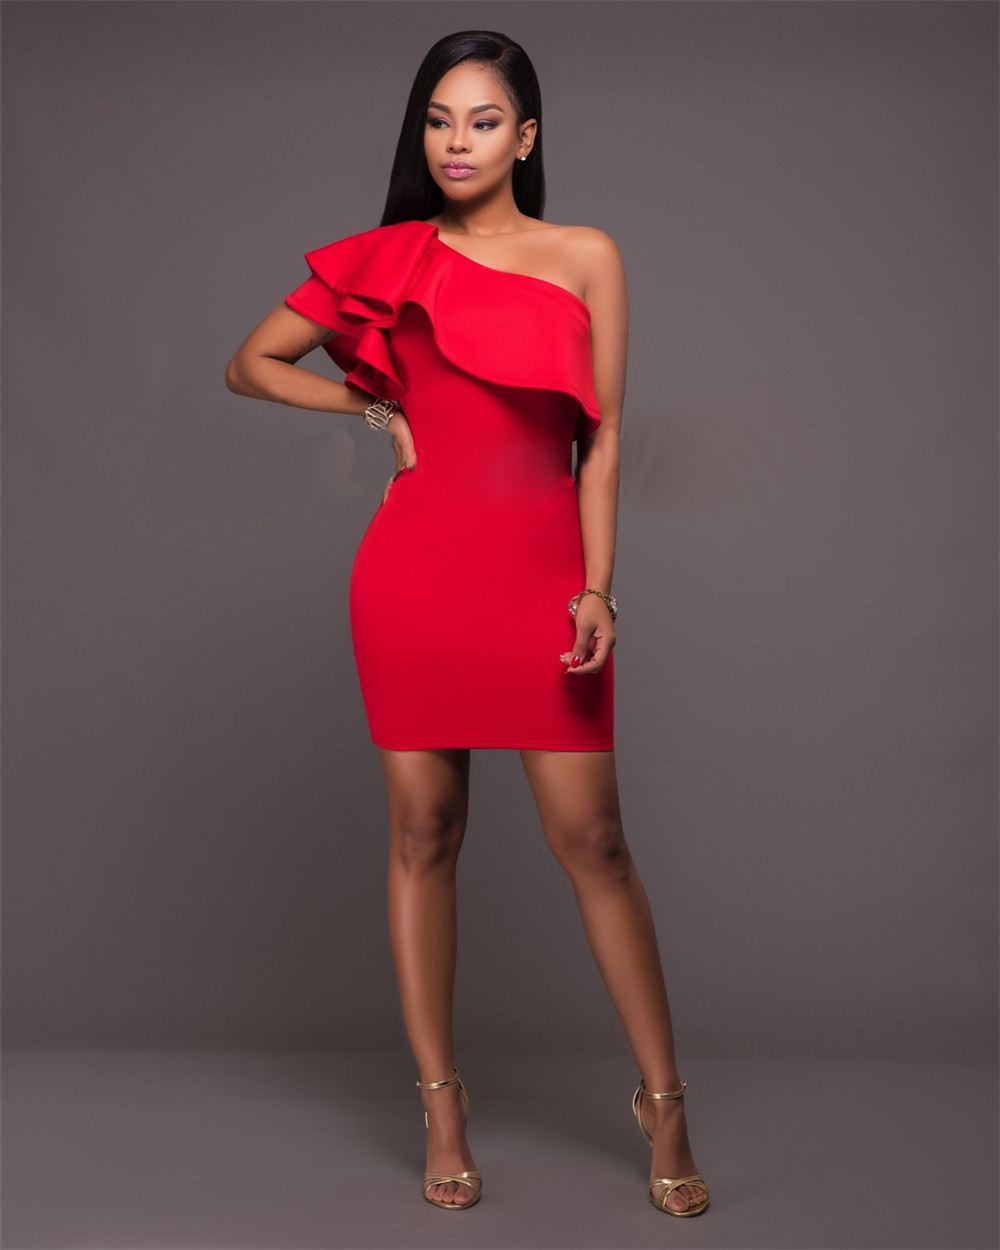 893f030196bc One Shoulder Ruffles Club Dresses Red Off Shoulder Party Night Club Mini  Dress Sleeveless Vestidos Sexy Clubwear Femme Jupe Robe-in Dresses from  Women s …